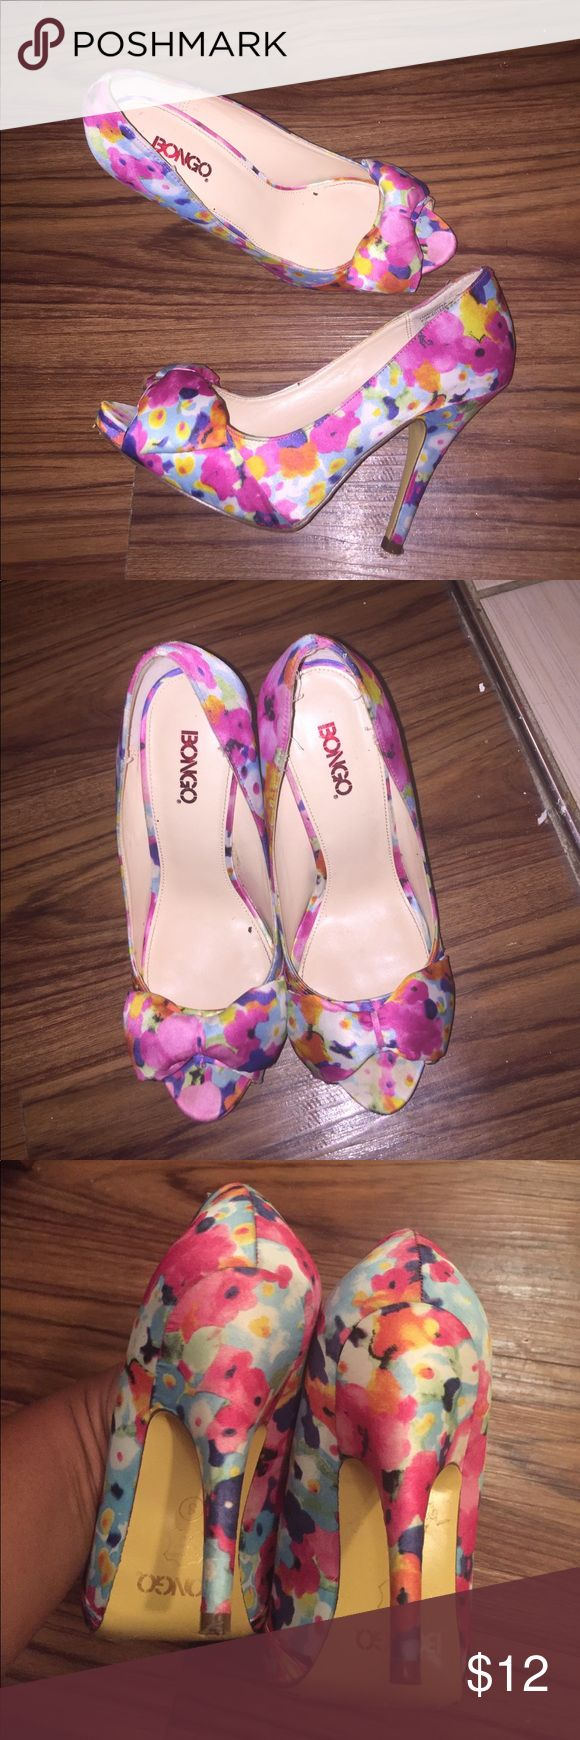 Bongo iris heels peep toe size 8 These shoes still have plenty of life left!! 4.5 in heel, .5 inch platform. Satin finish. You will not be disappointed!!! As always, bundle and save. BONGO Shoes Heels